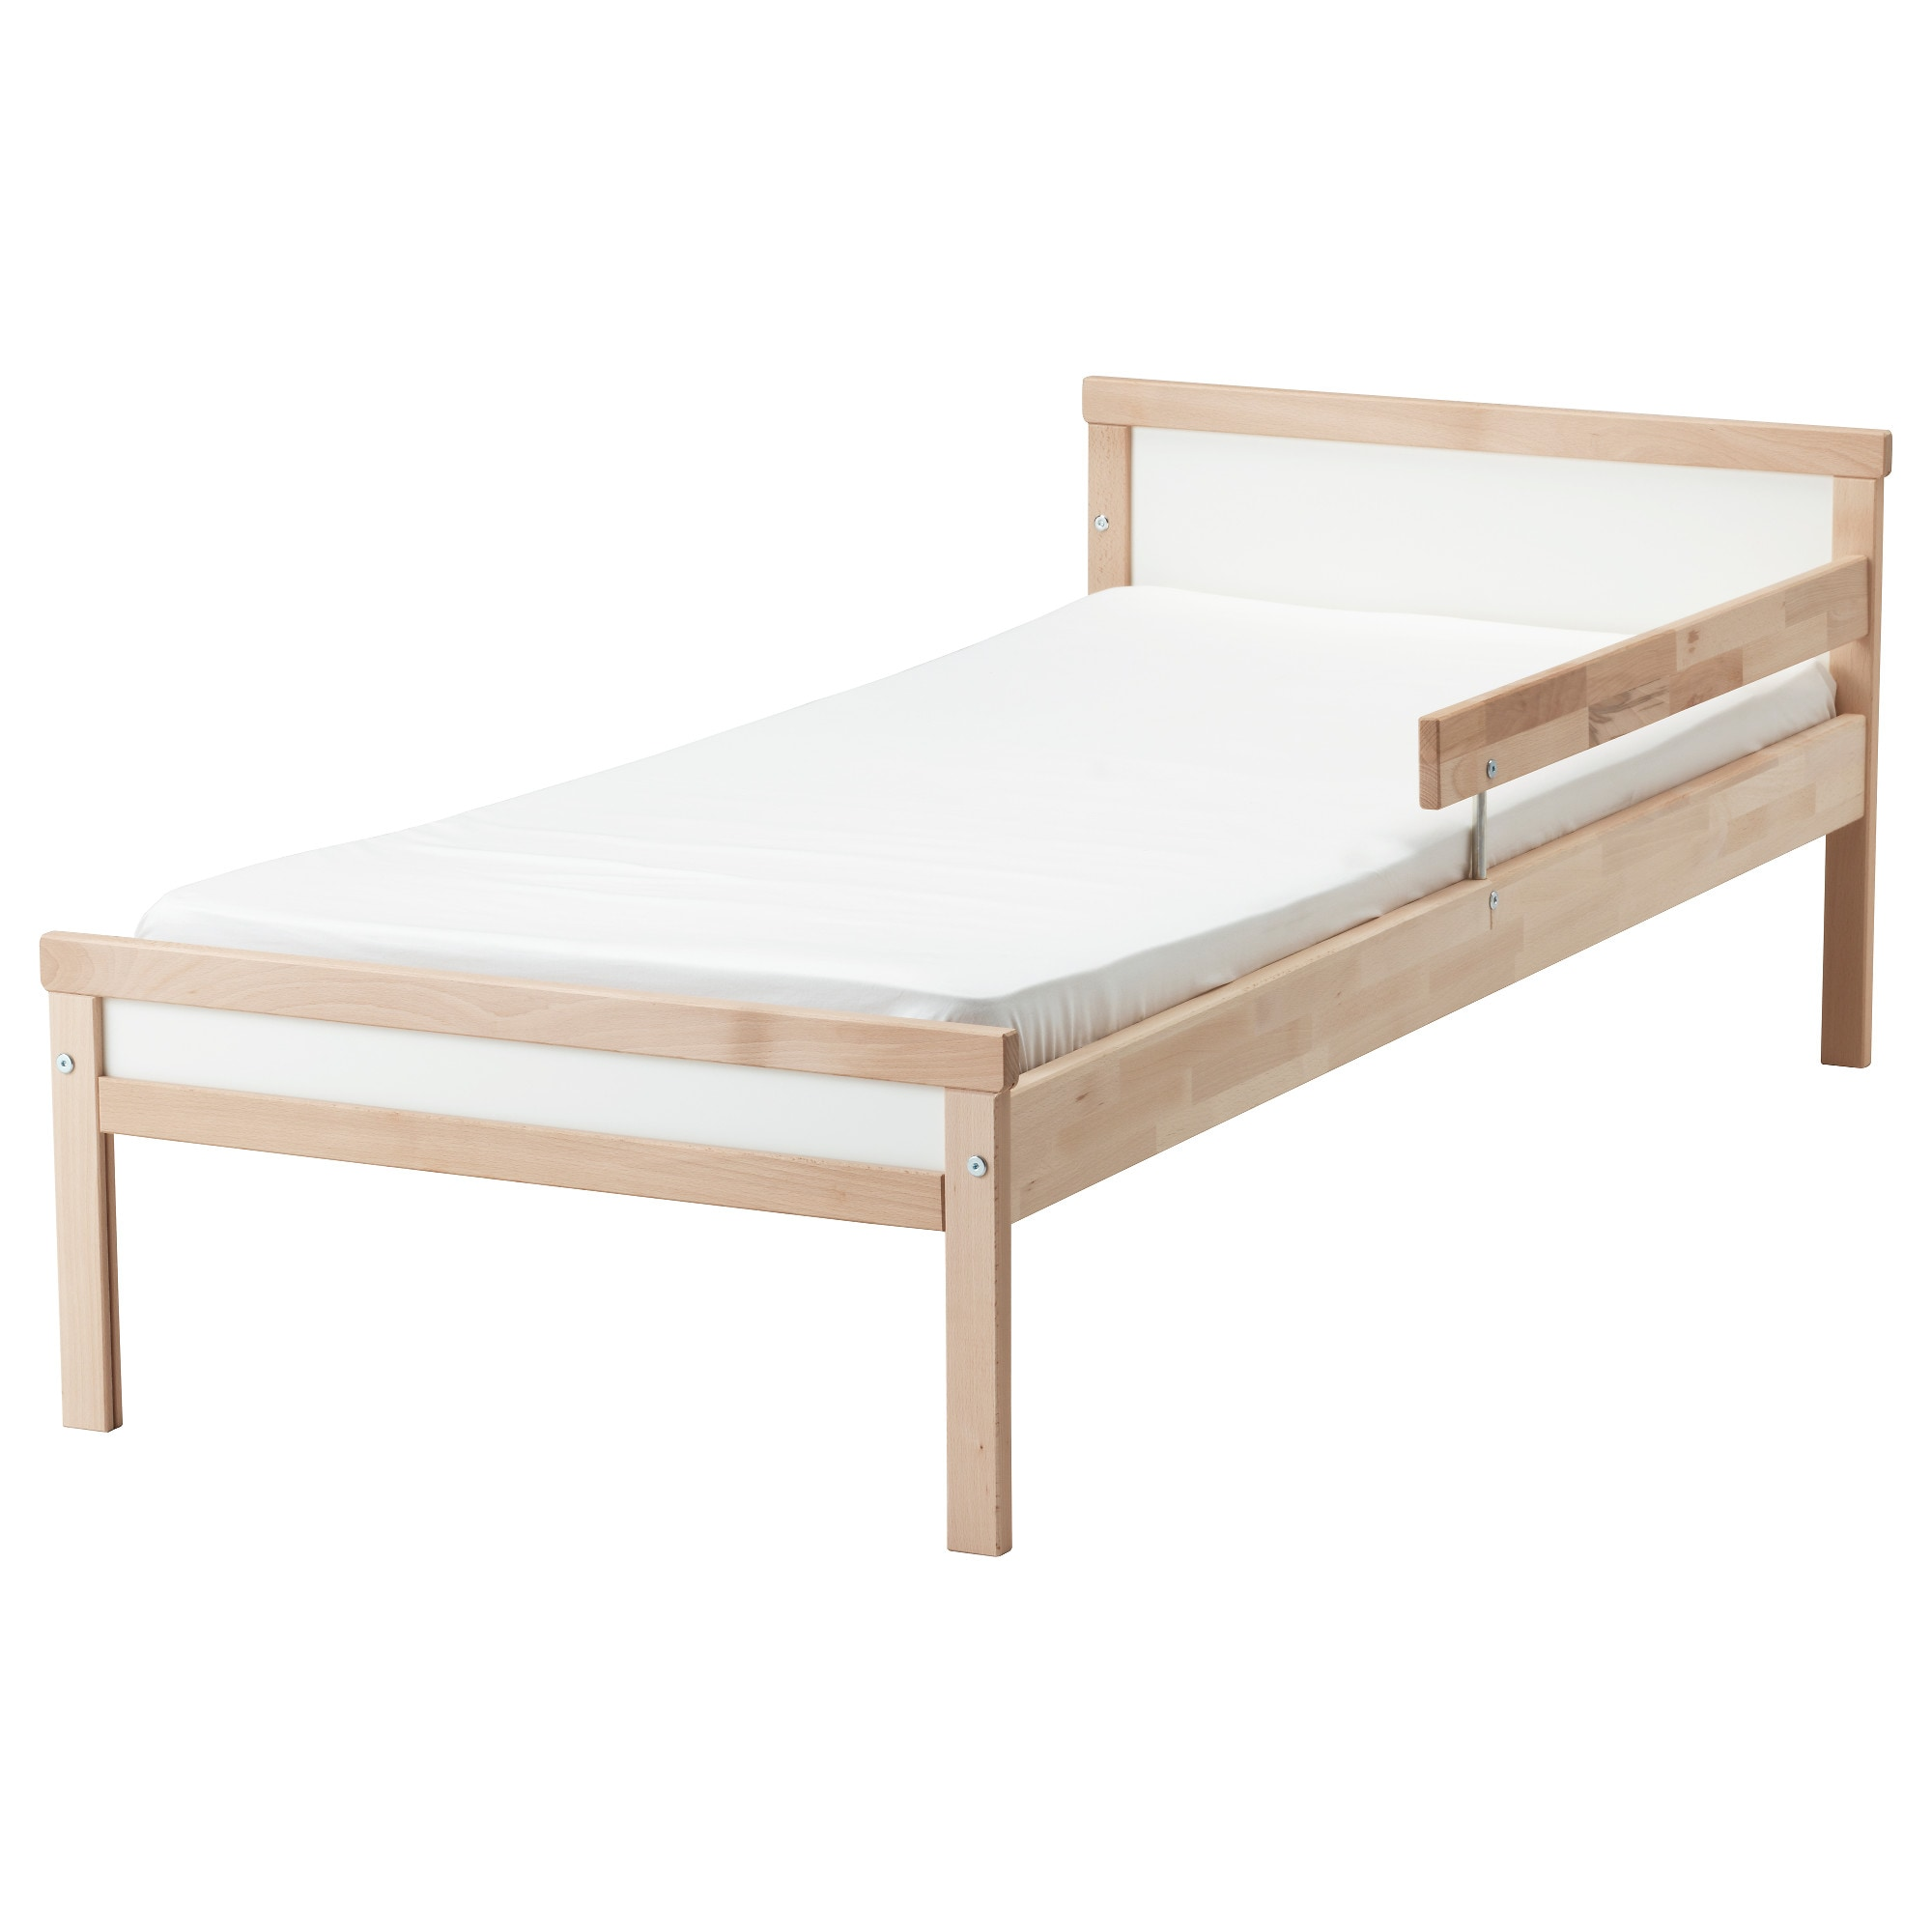 Baby crib youth bed - Sniglar Bed Frame With Slatted Bed Base Beech Length 65 Width 30